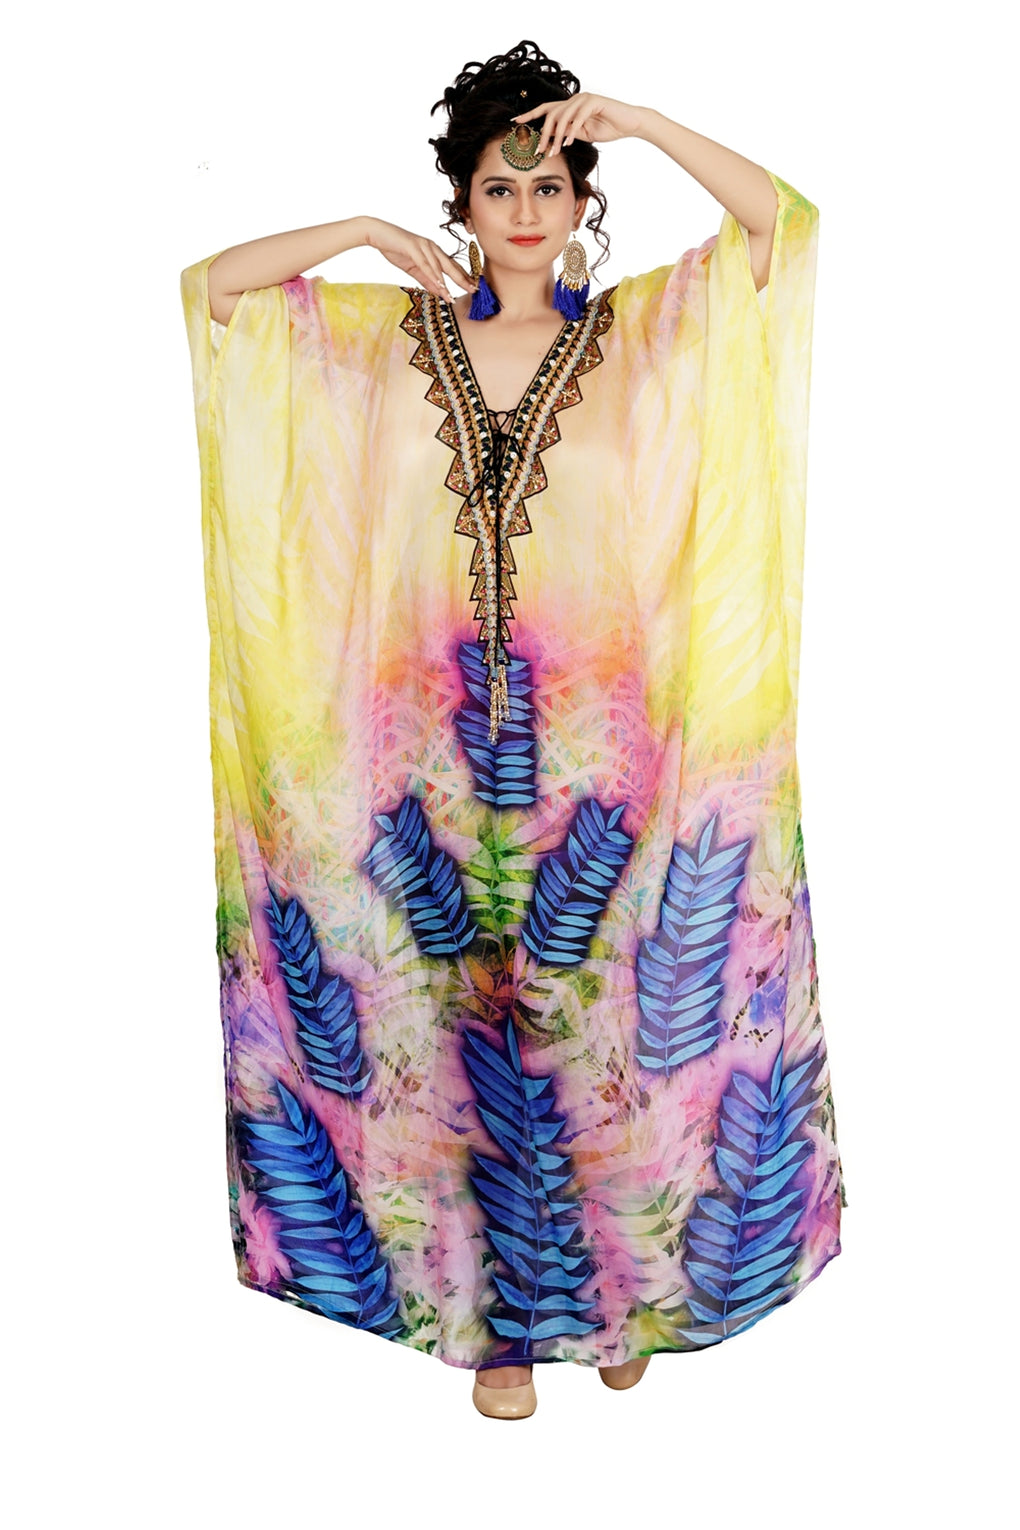 vacation beach outfits Deep neck with triangular lace up sunshine effect with blue and lavender aesthetic silk kaftan - Silk kaftan